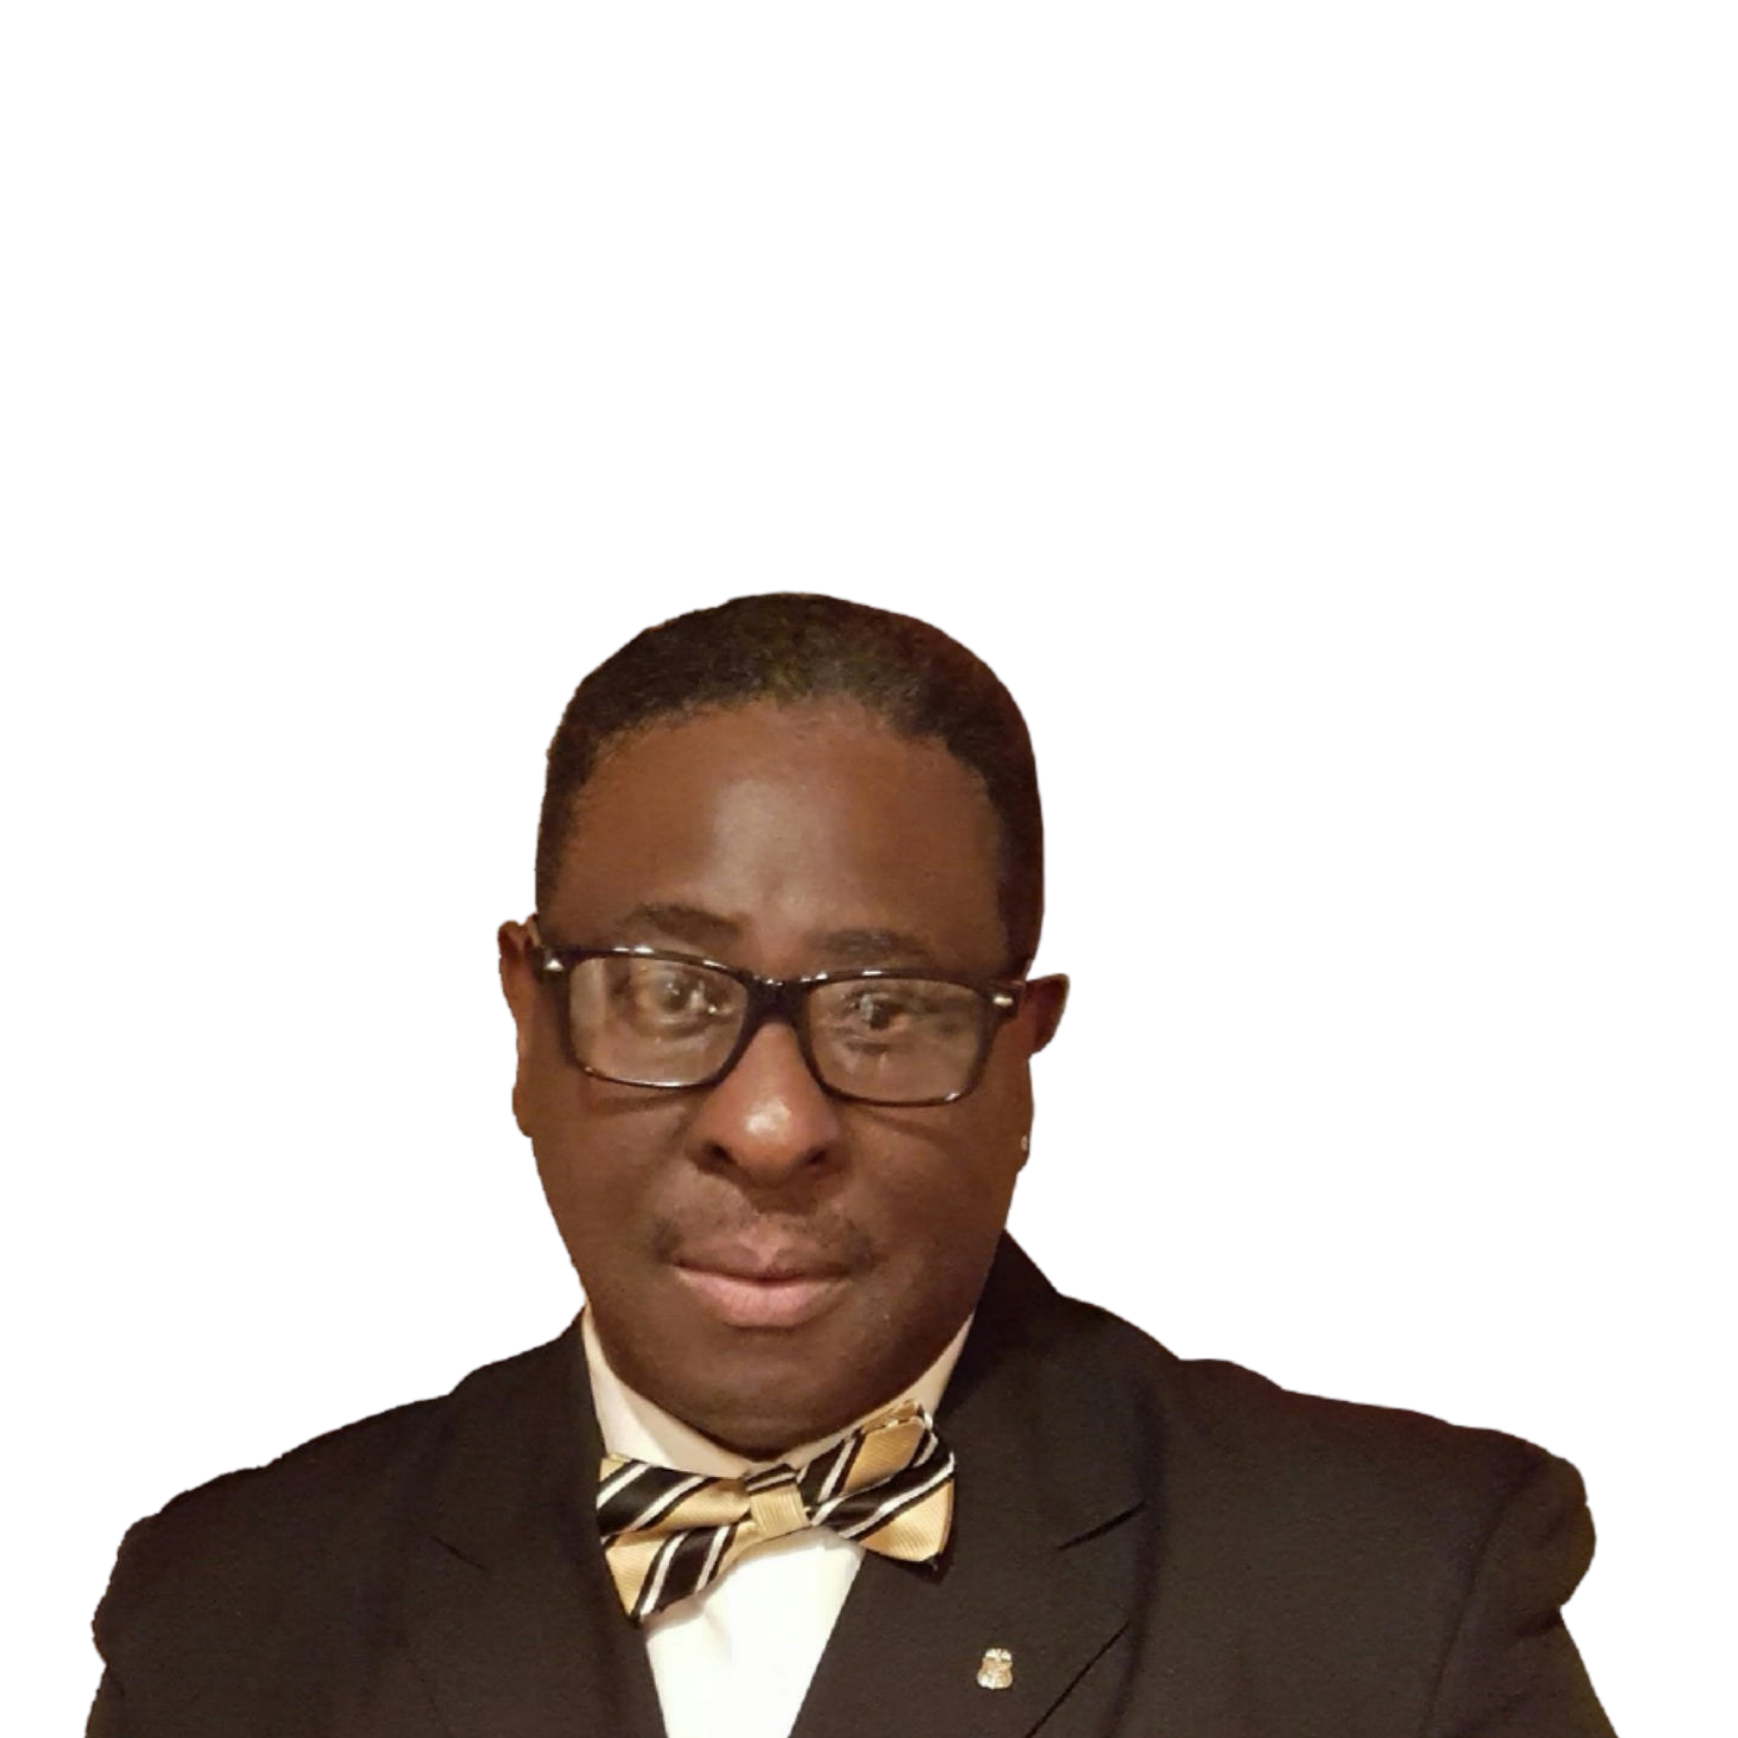 David Fisher is a retired Philadelphia Police Officer and president of the Philadelphia chapter of the National Black Police Association.